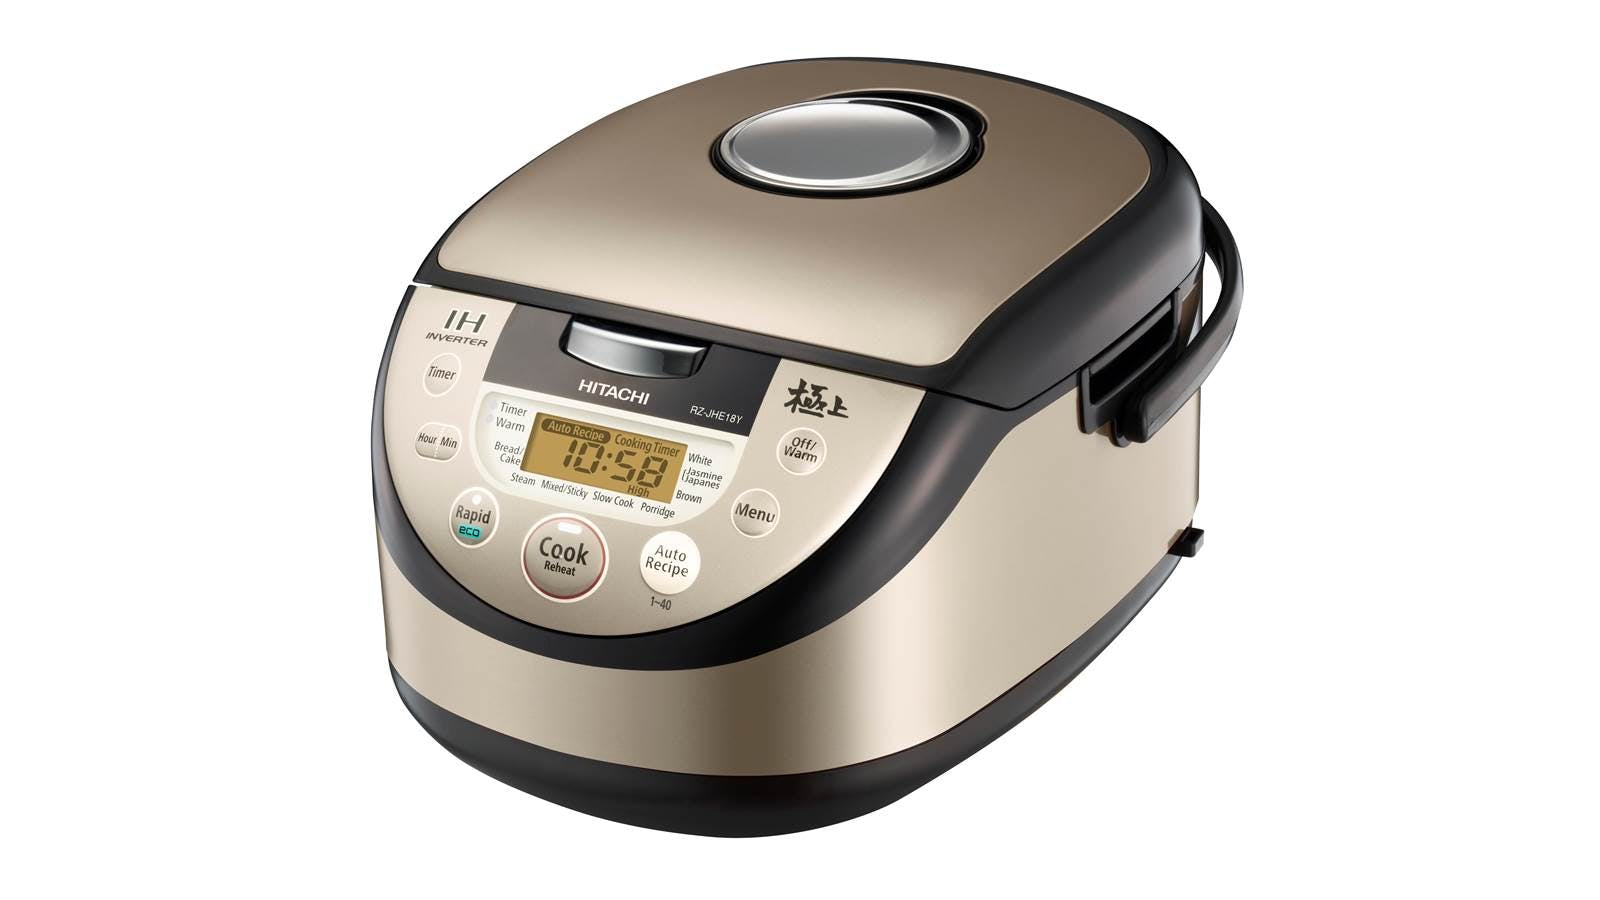 Hitachi 1 8L rice Cooker - Gold